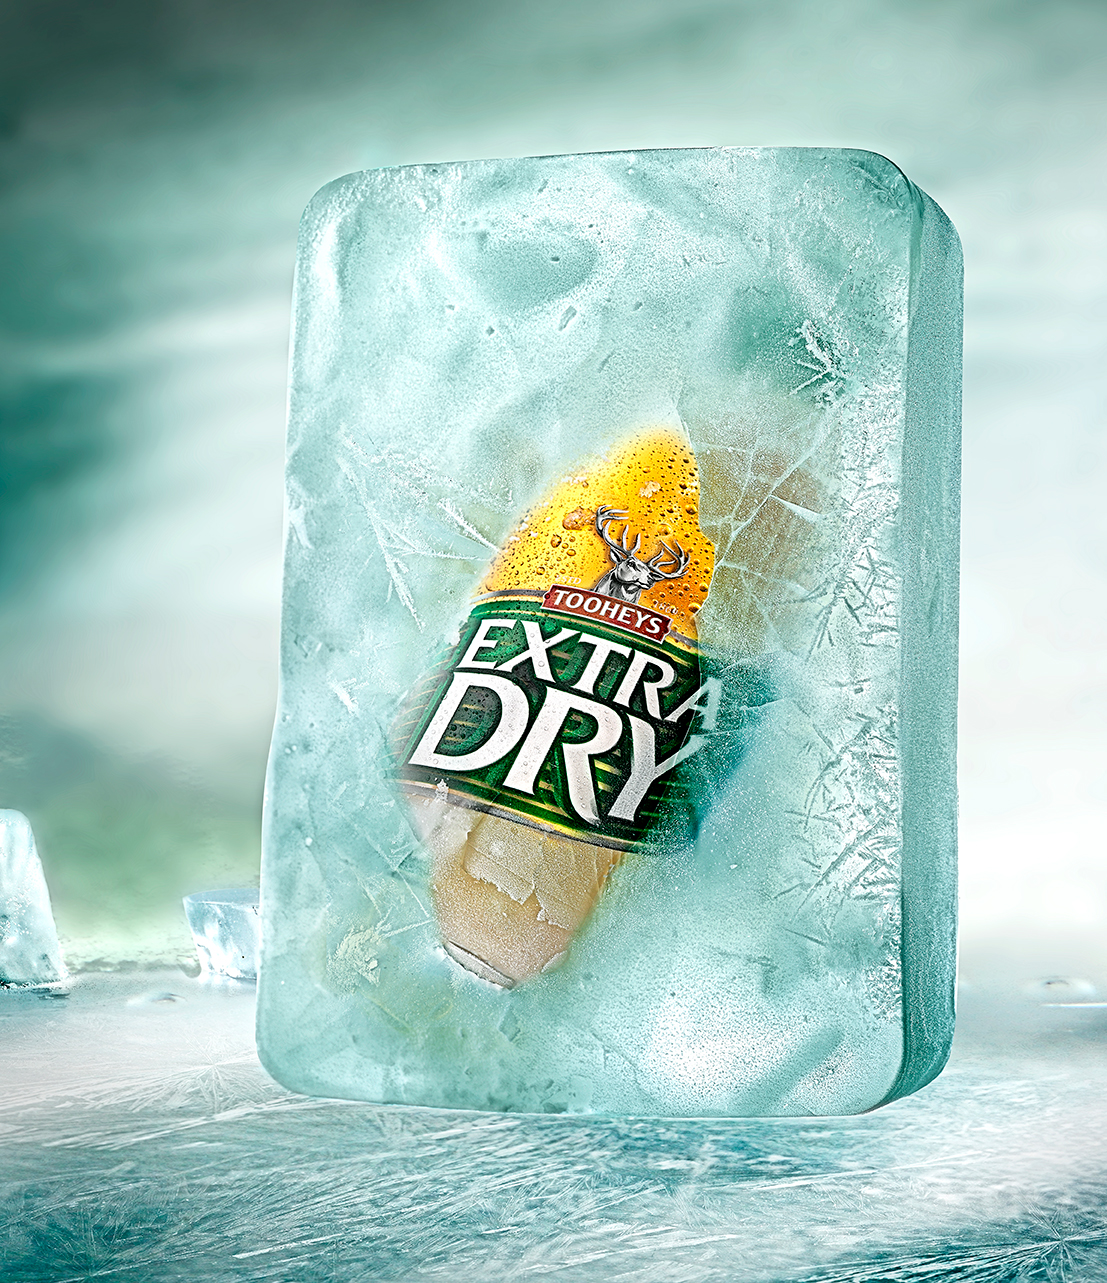 Energi Packaging Design Agency Specialists Product Lifestyle Photography Tooheys Extra Dry Beer Bottle Ice Frozen Refreshing Crisp